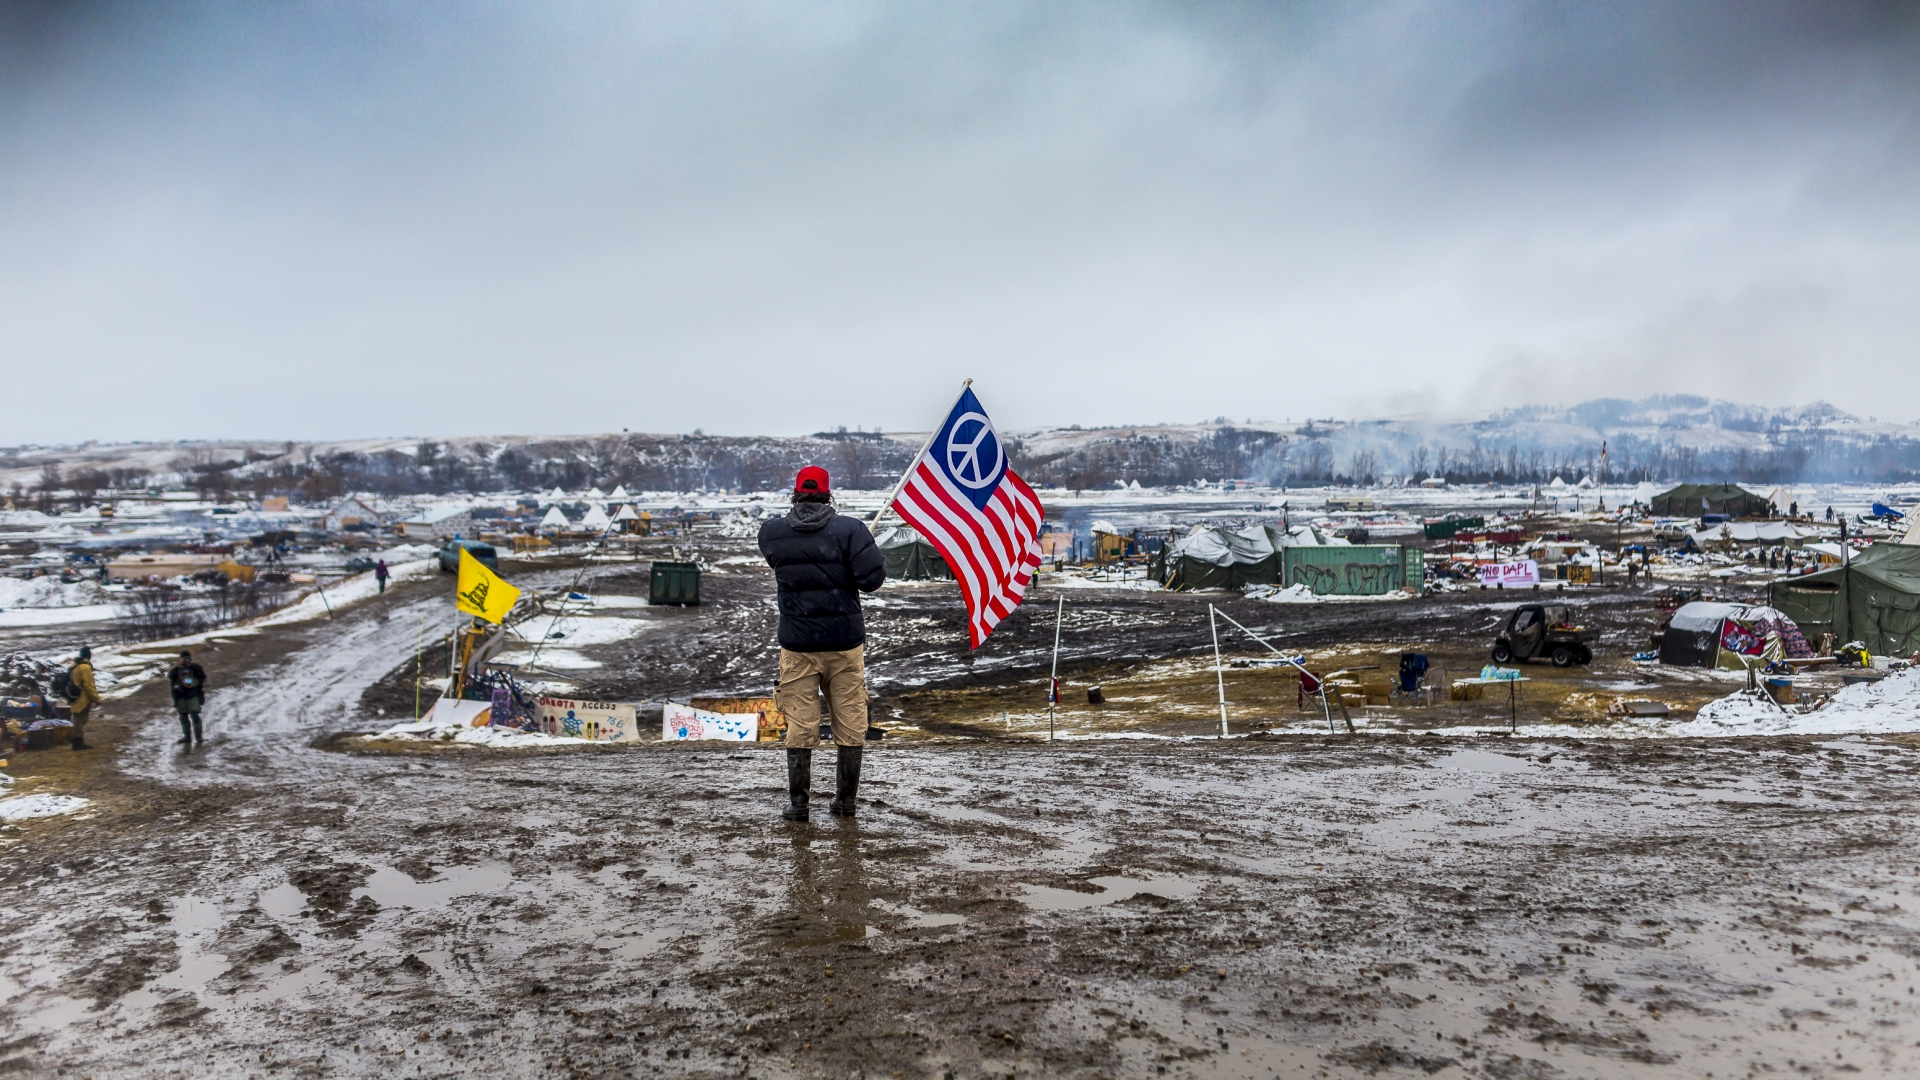 Defiant Dakota Access Pipeline water protectors faced-off with various law enforcement agencies on the day the camp was slated to be raided. Many protesters and independent journalist, who were all threatened with multiple felony charges if they didn't leave were met with militarized police on the road abutting the camp. (Credit: Michael Nigro/Pacific Press/LightRocket via Getty Images)